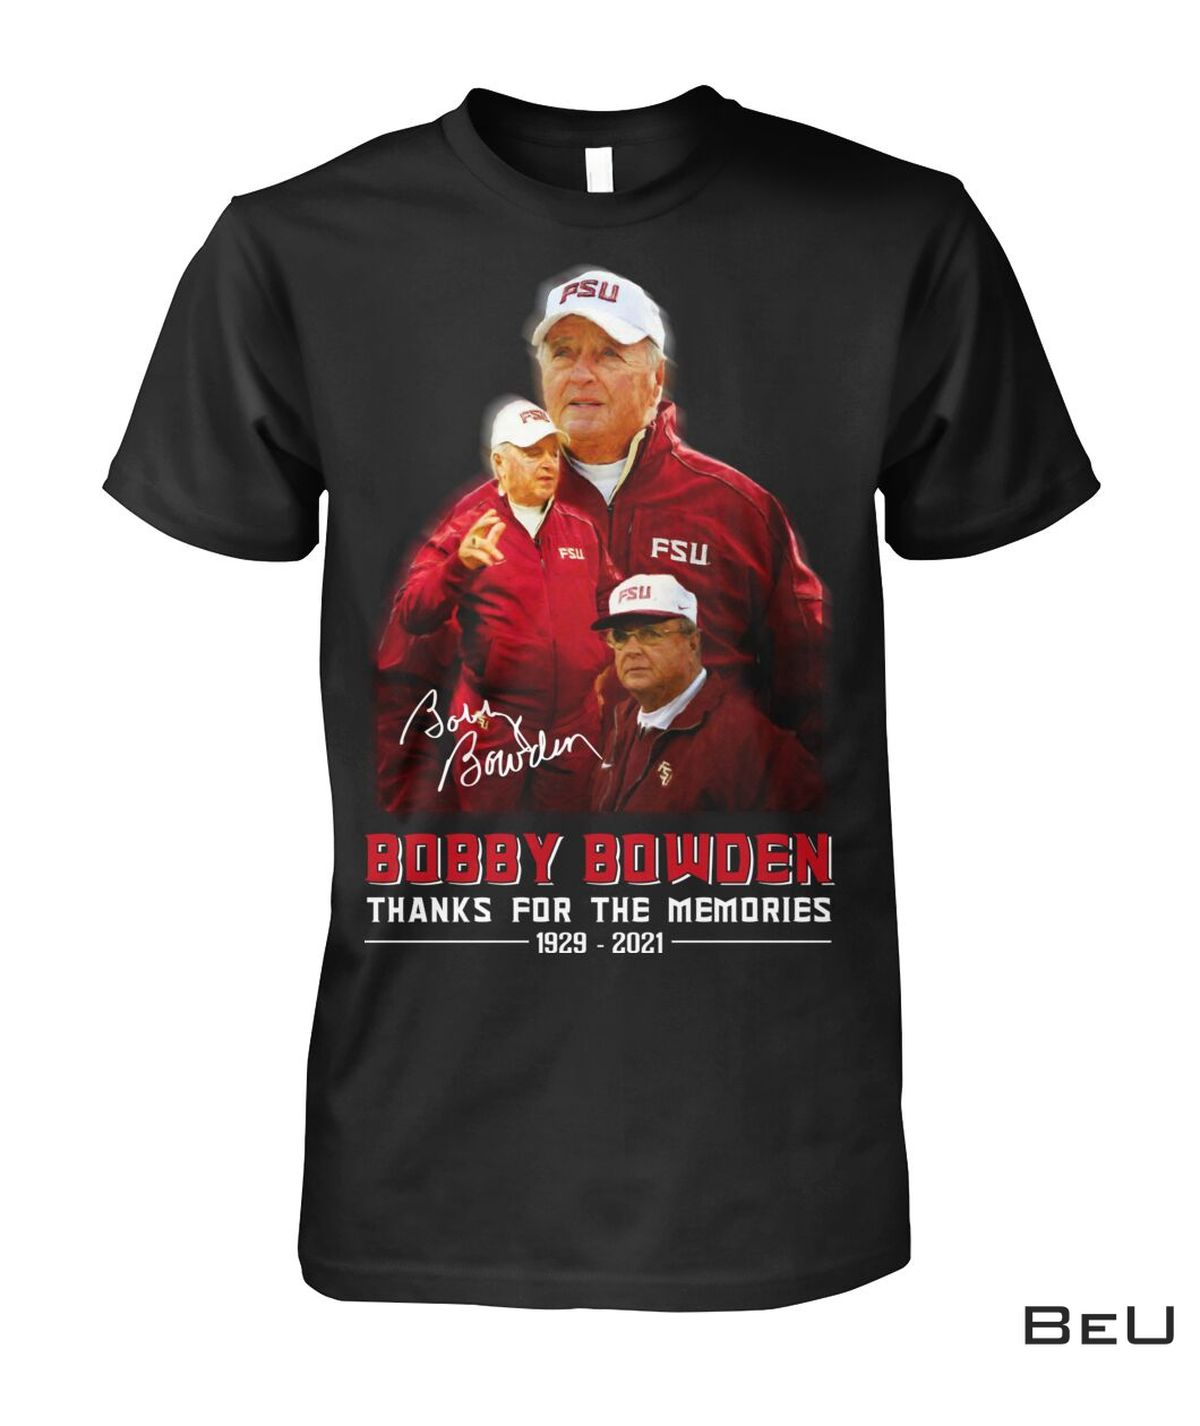 Bobby Bowden Thanks For The Memories Shirt